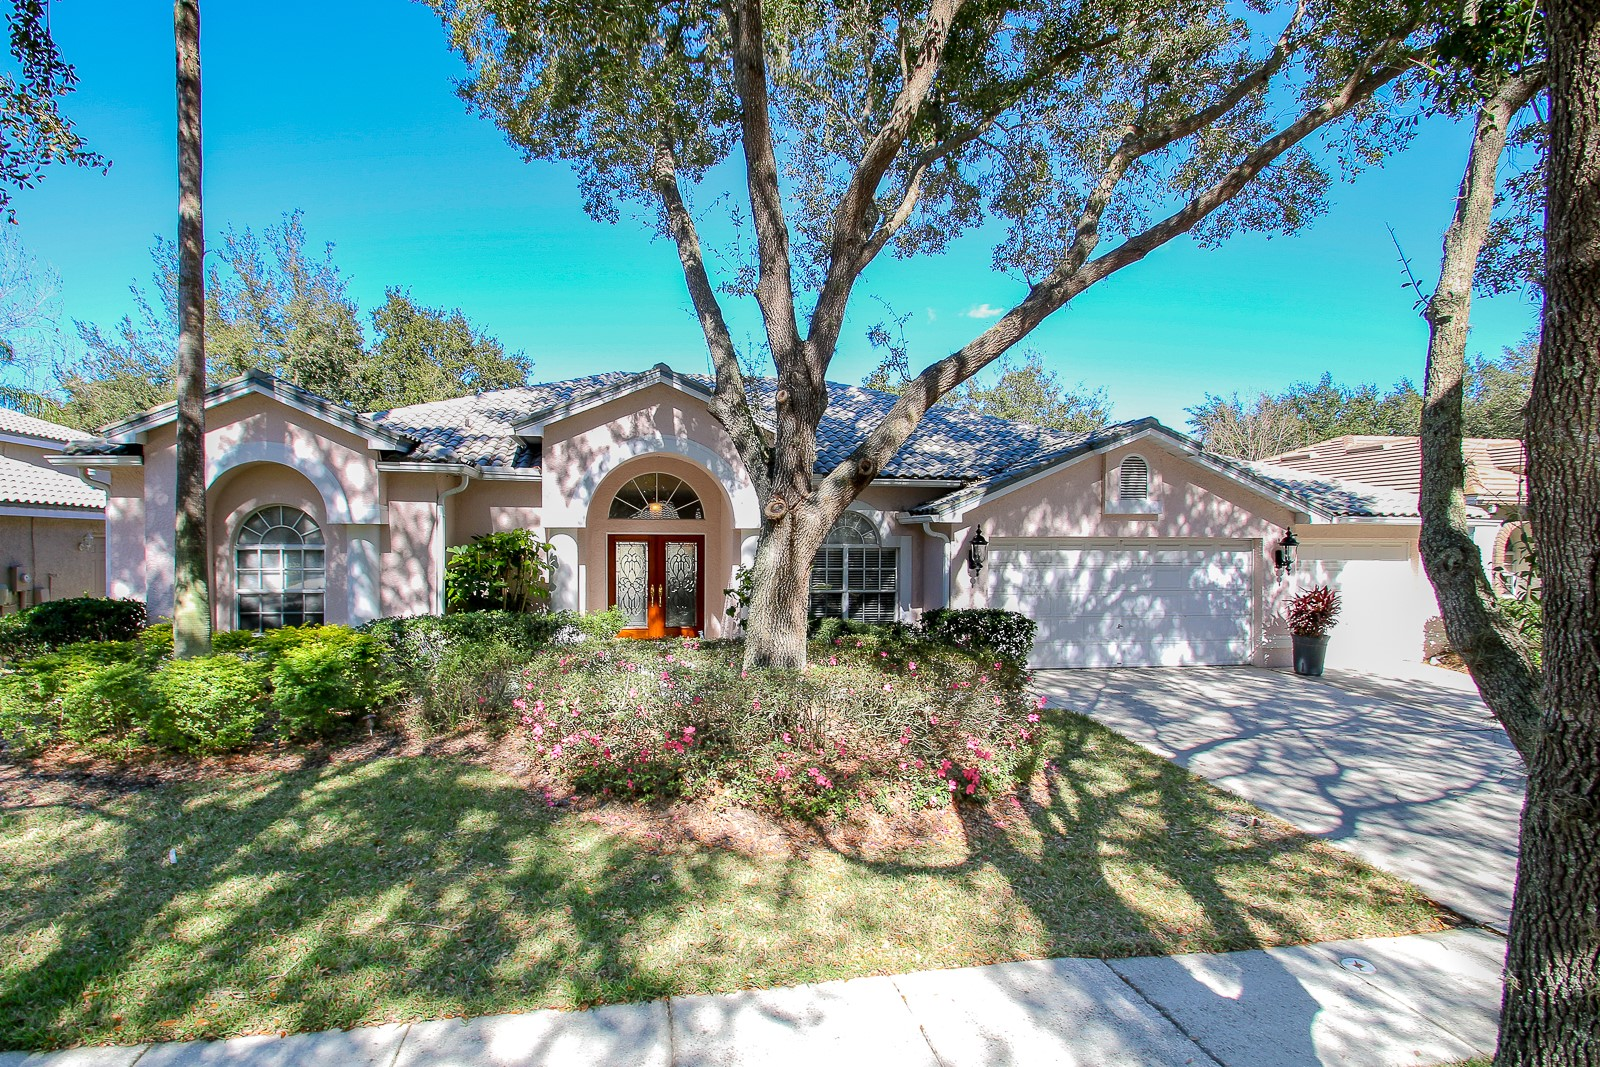 Check out this new tampa pool home for sale in hunters green this 4 bedroom 3 bath 3 car garage home has a great floor plan and is located in a gated